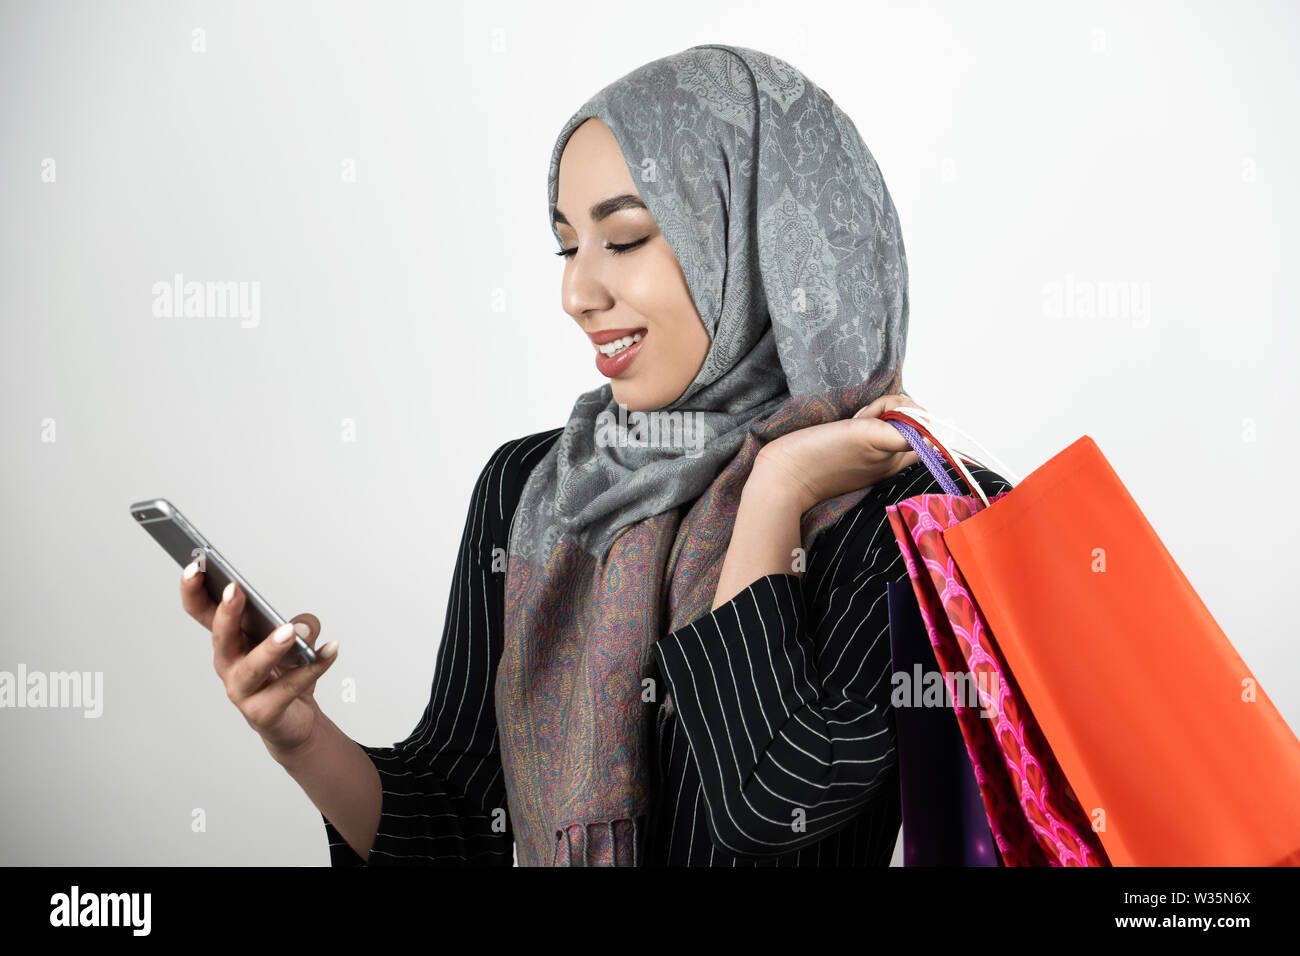 young beautiful smiling Muslim business woman wearing turban hijab headscarf tapping smartphone with one hand and carrying shopping bags in another - Stock Image